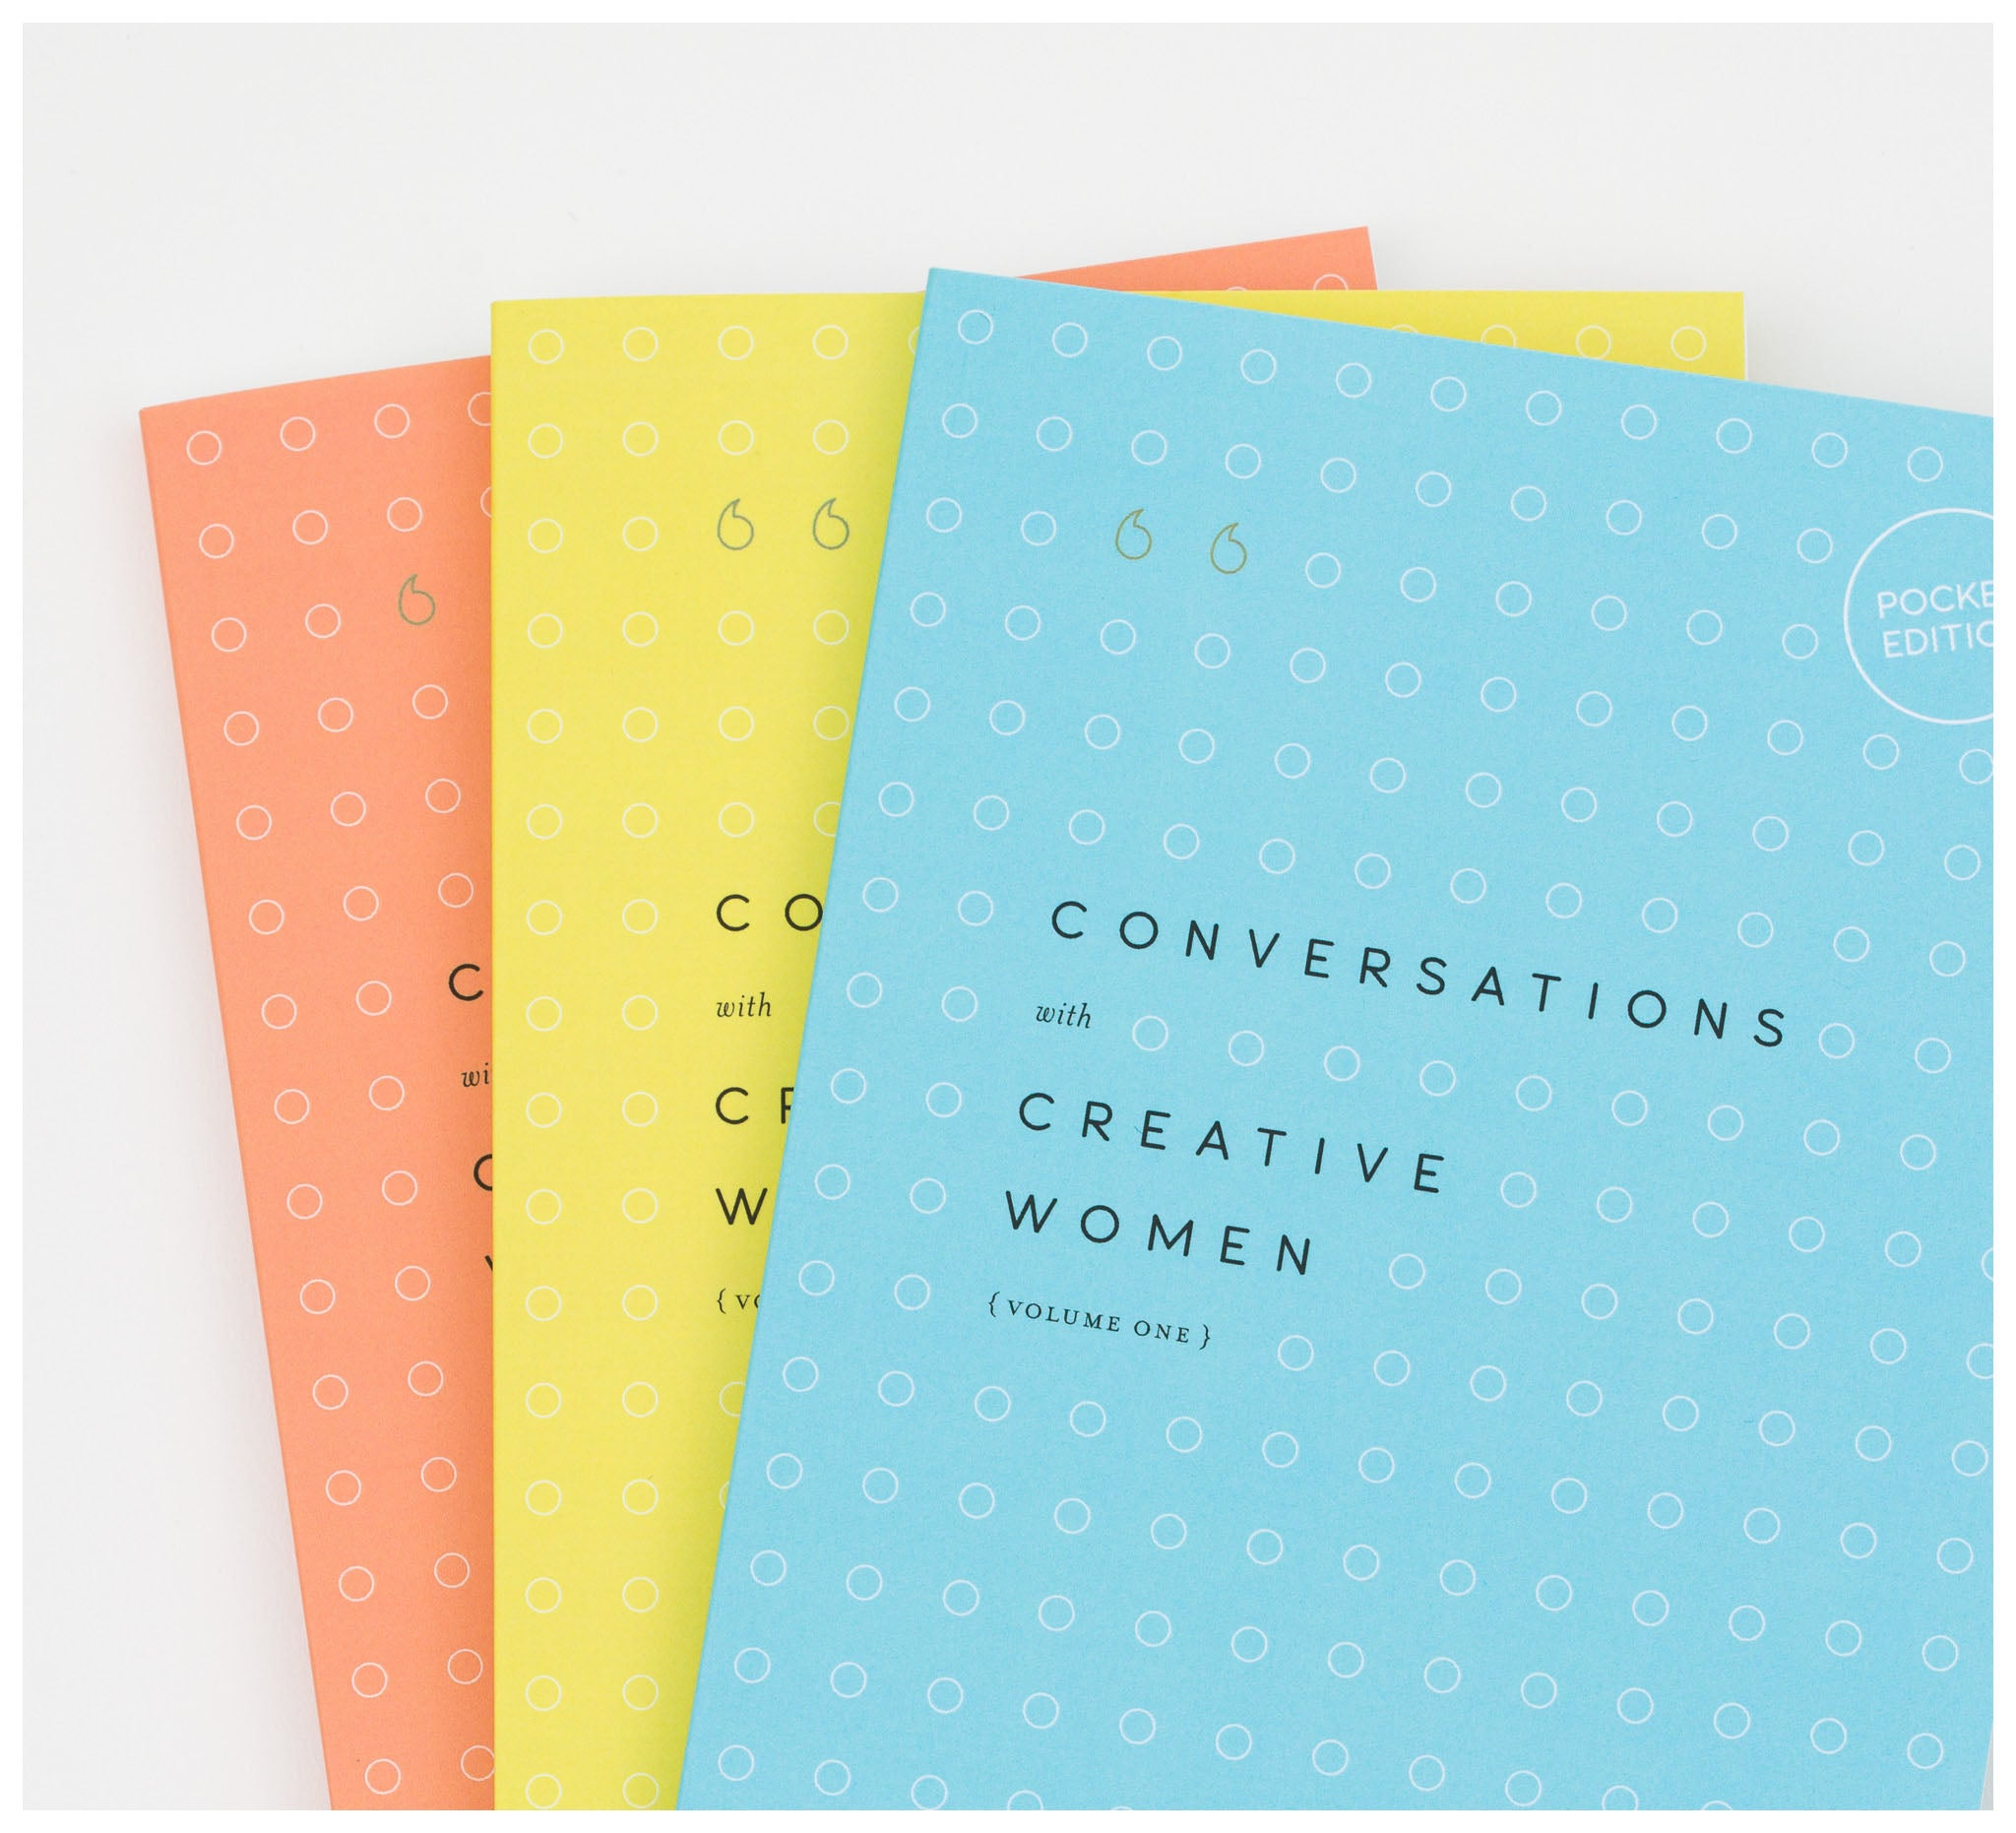 Creative Minds - Conversations with Creative Women: Bundle (pocket edition) by Tess McCabe - Book